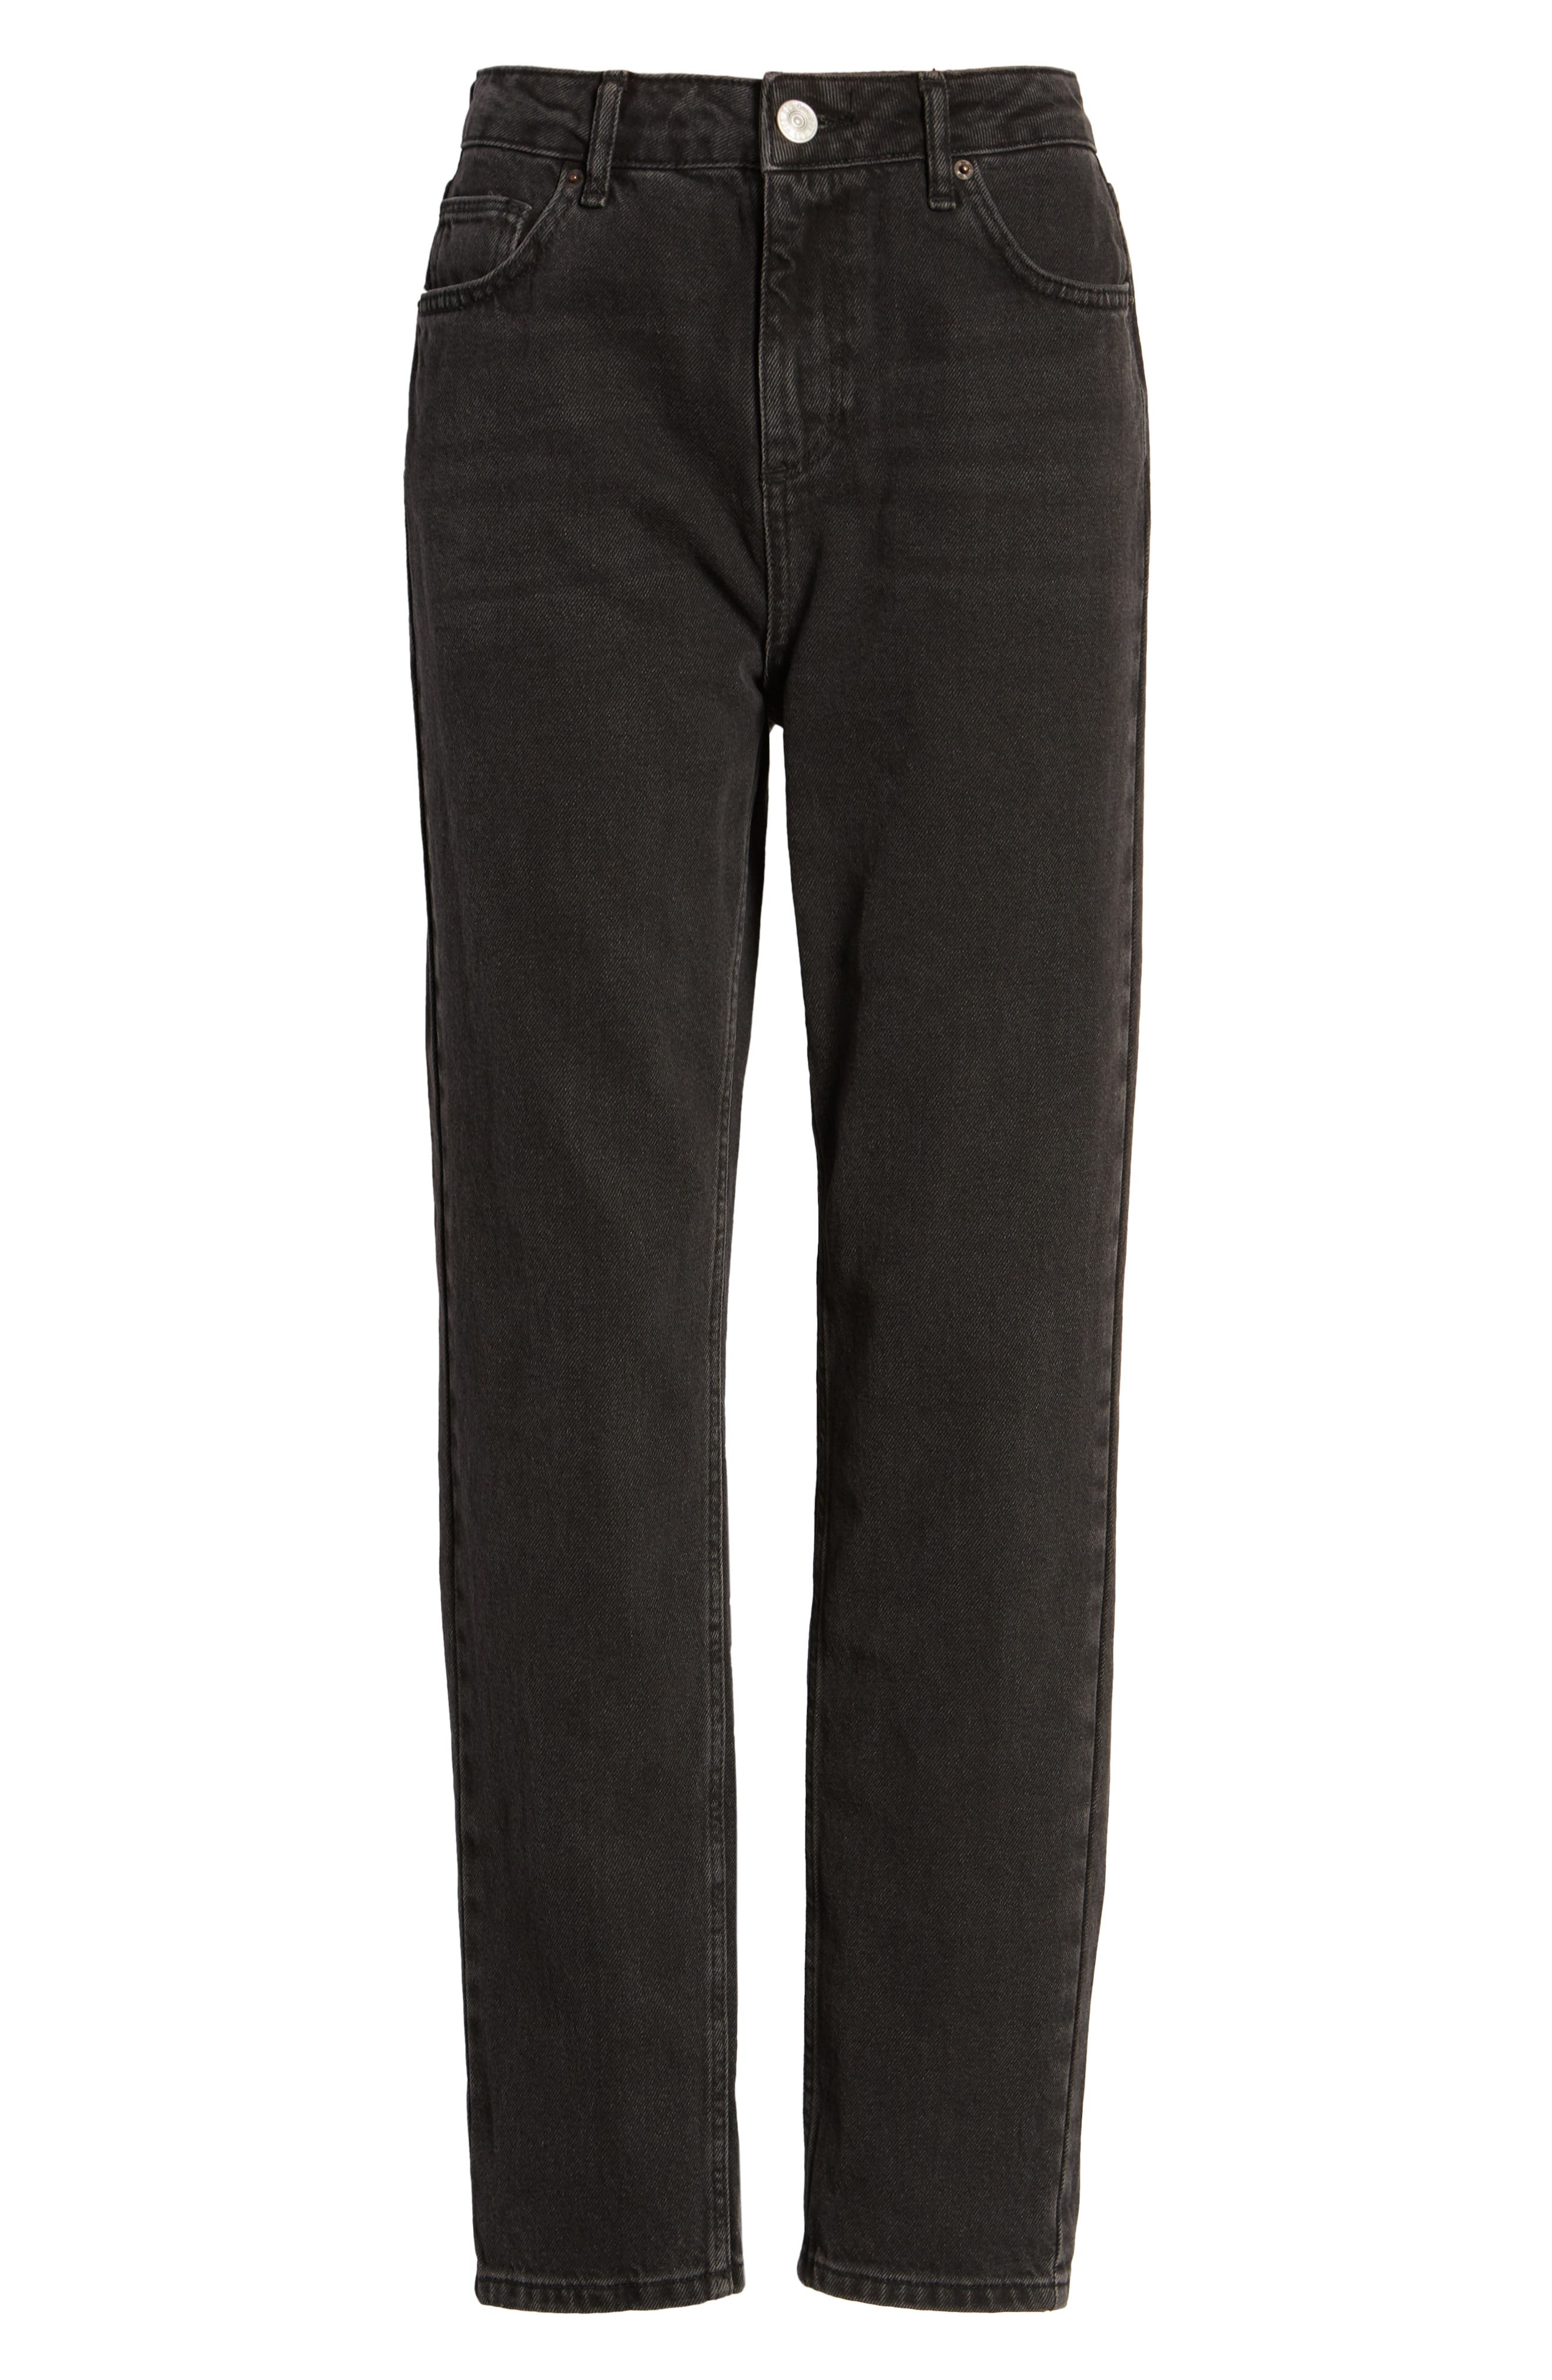 BDG,                             Urban Outfitters Mom Jeans,                             Alternate thumbnail 7, color,                             CARBON